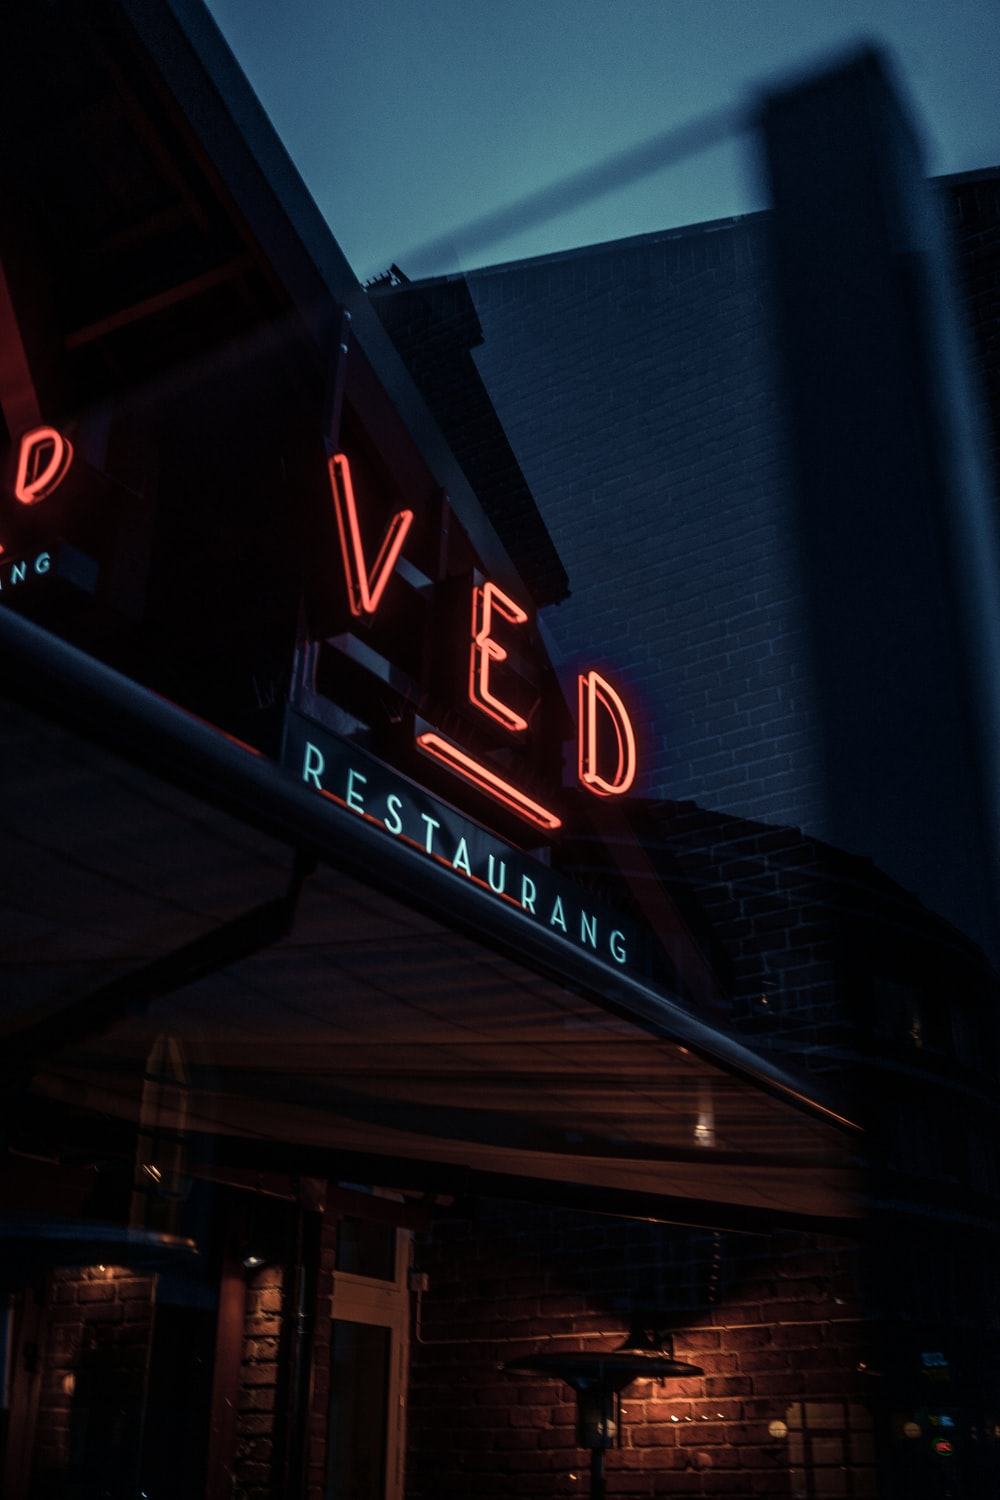 Ved signage at night